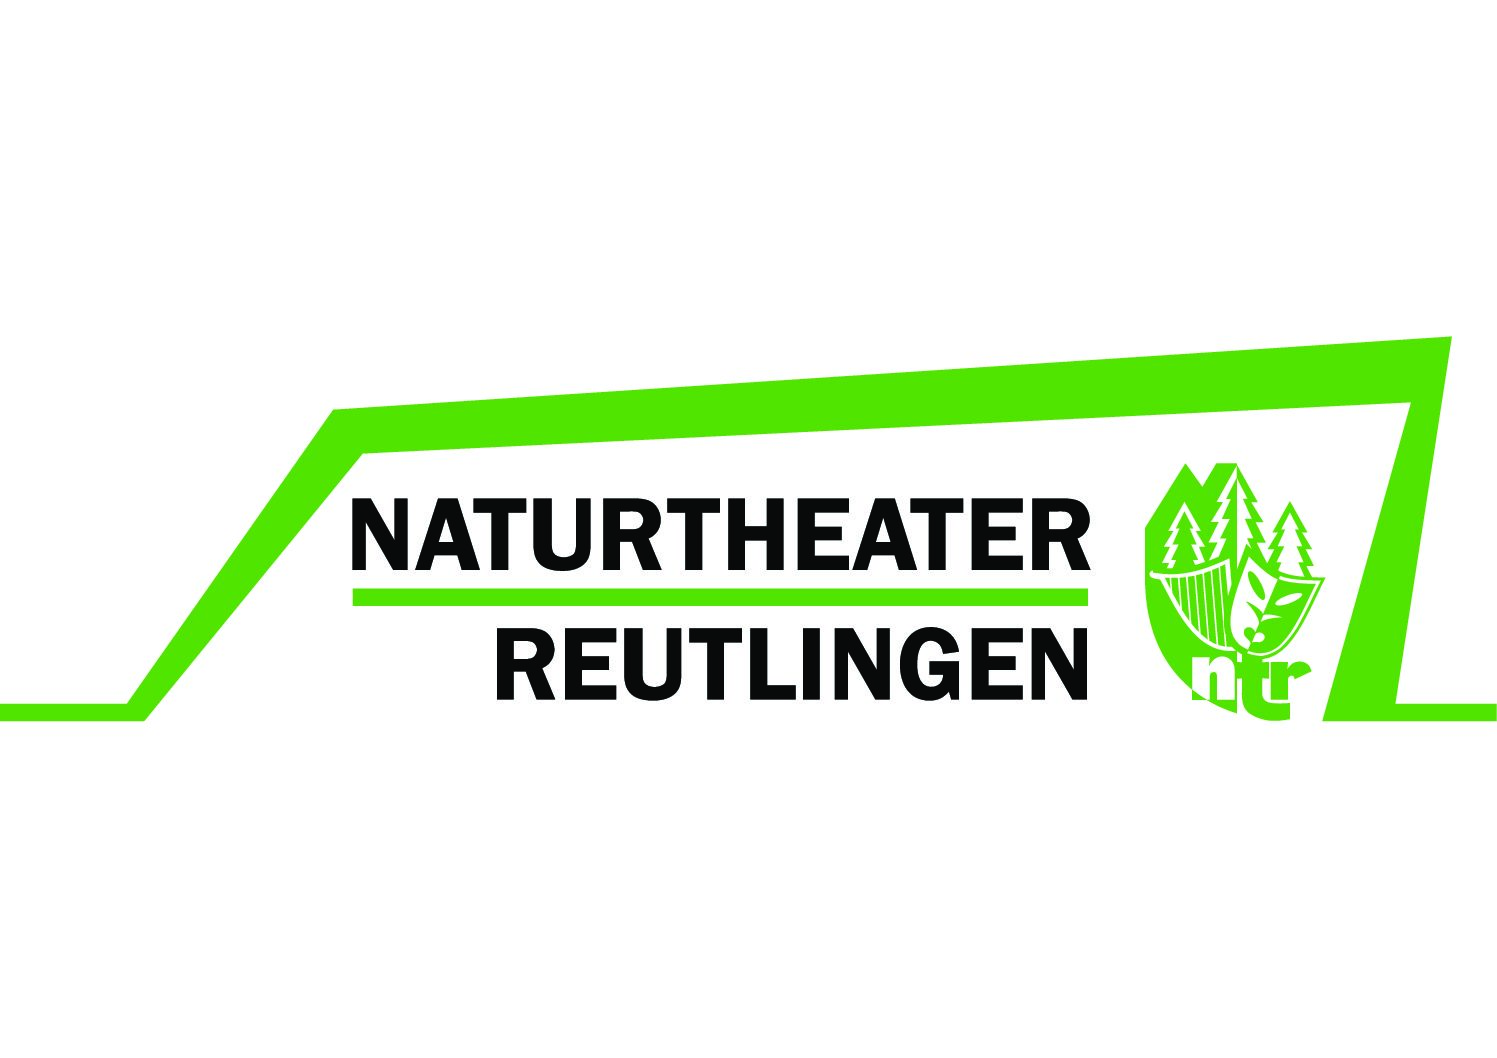 Naturtheater Reutlingen